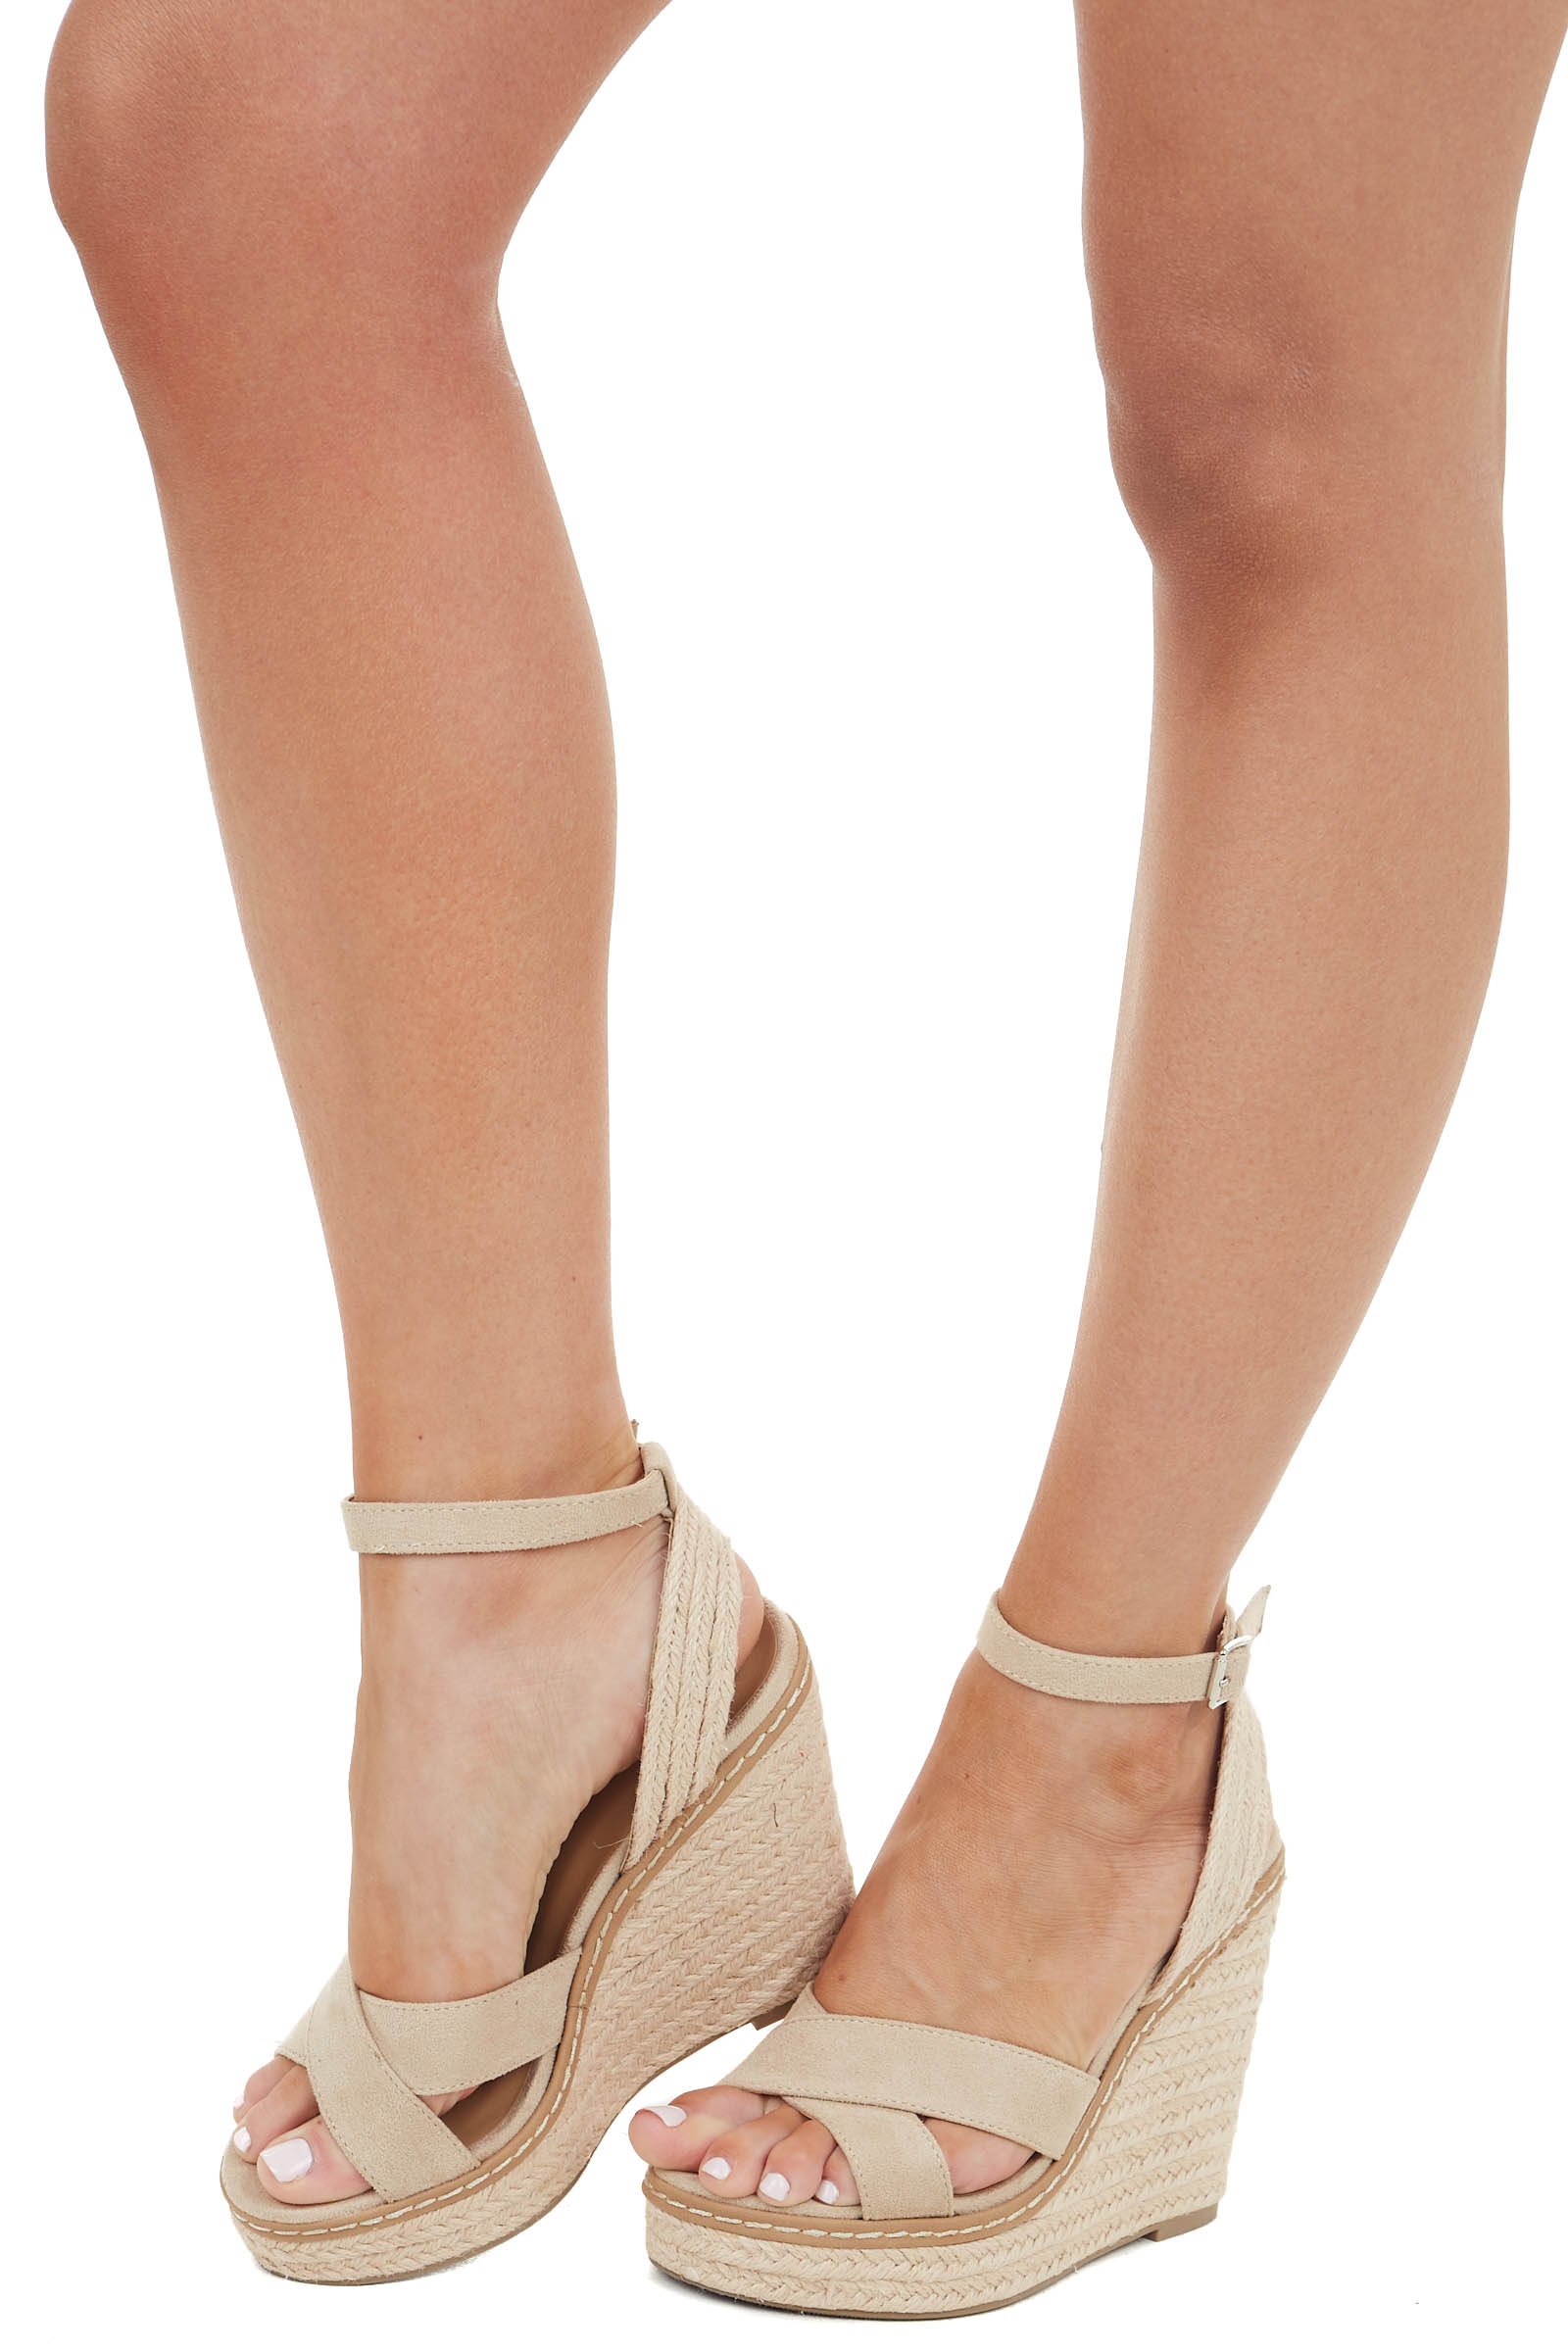 Oatmeal Faux Suede Espadrille Wedge with Criss Cross Detail